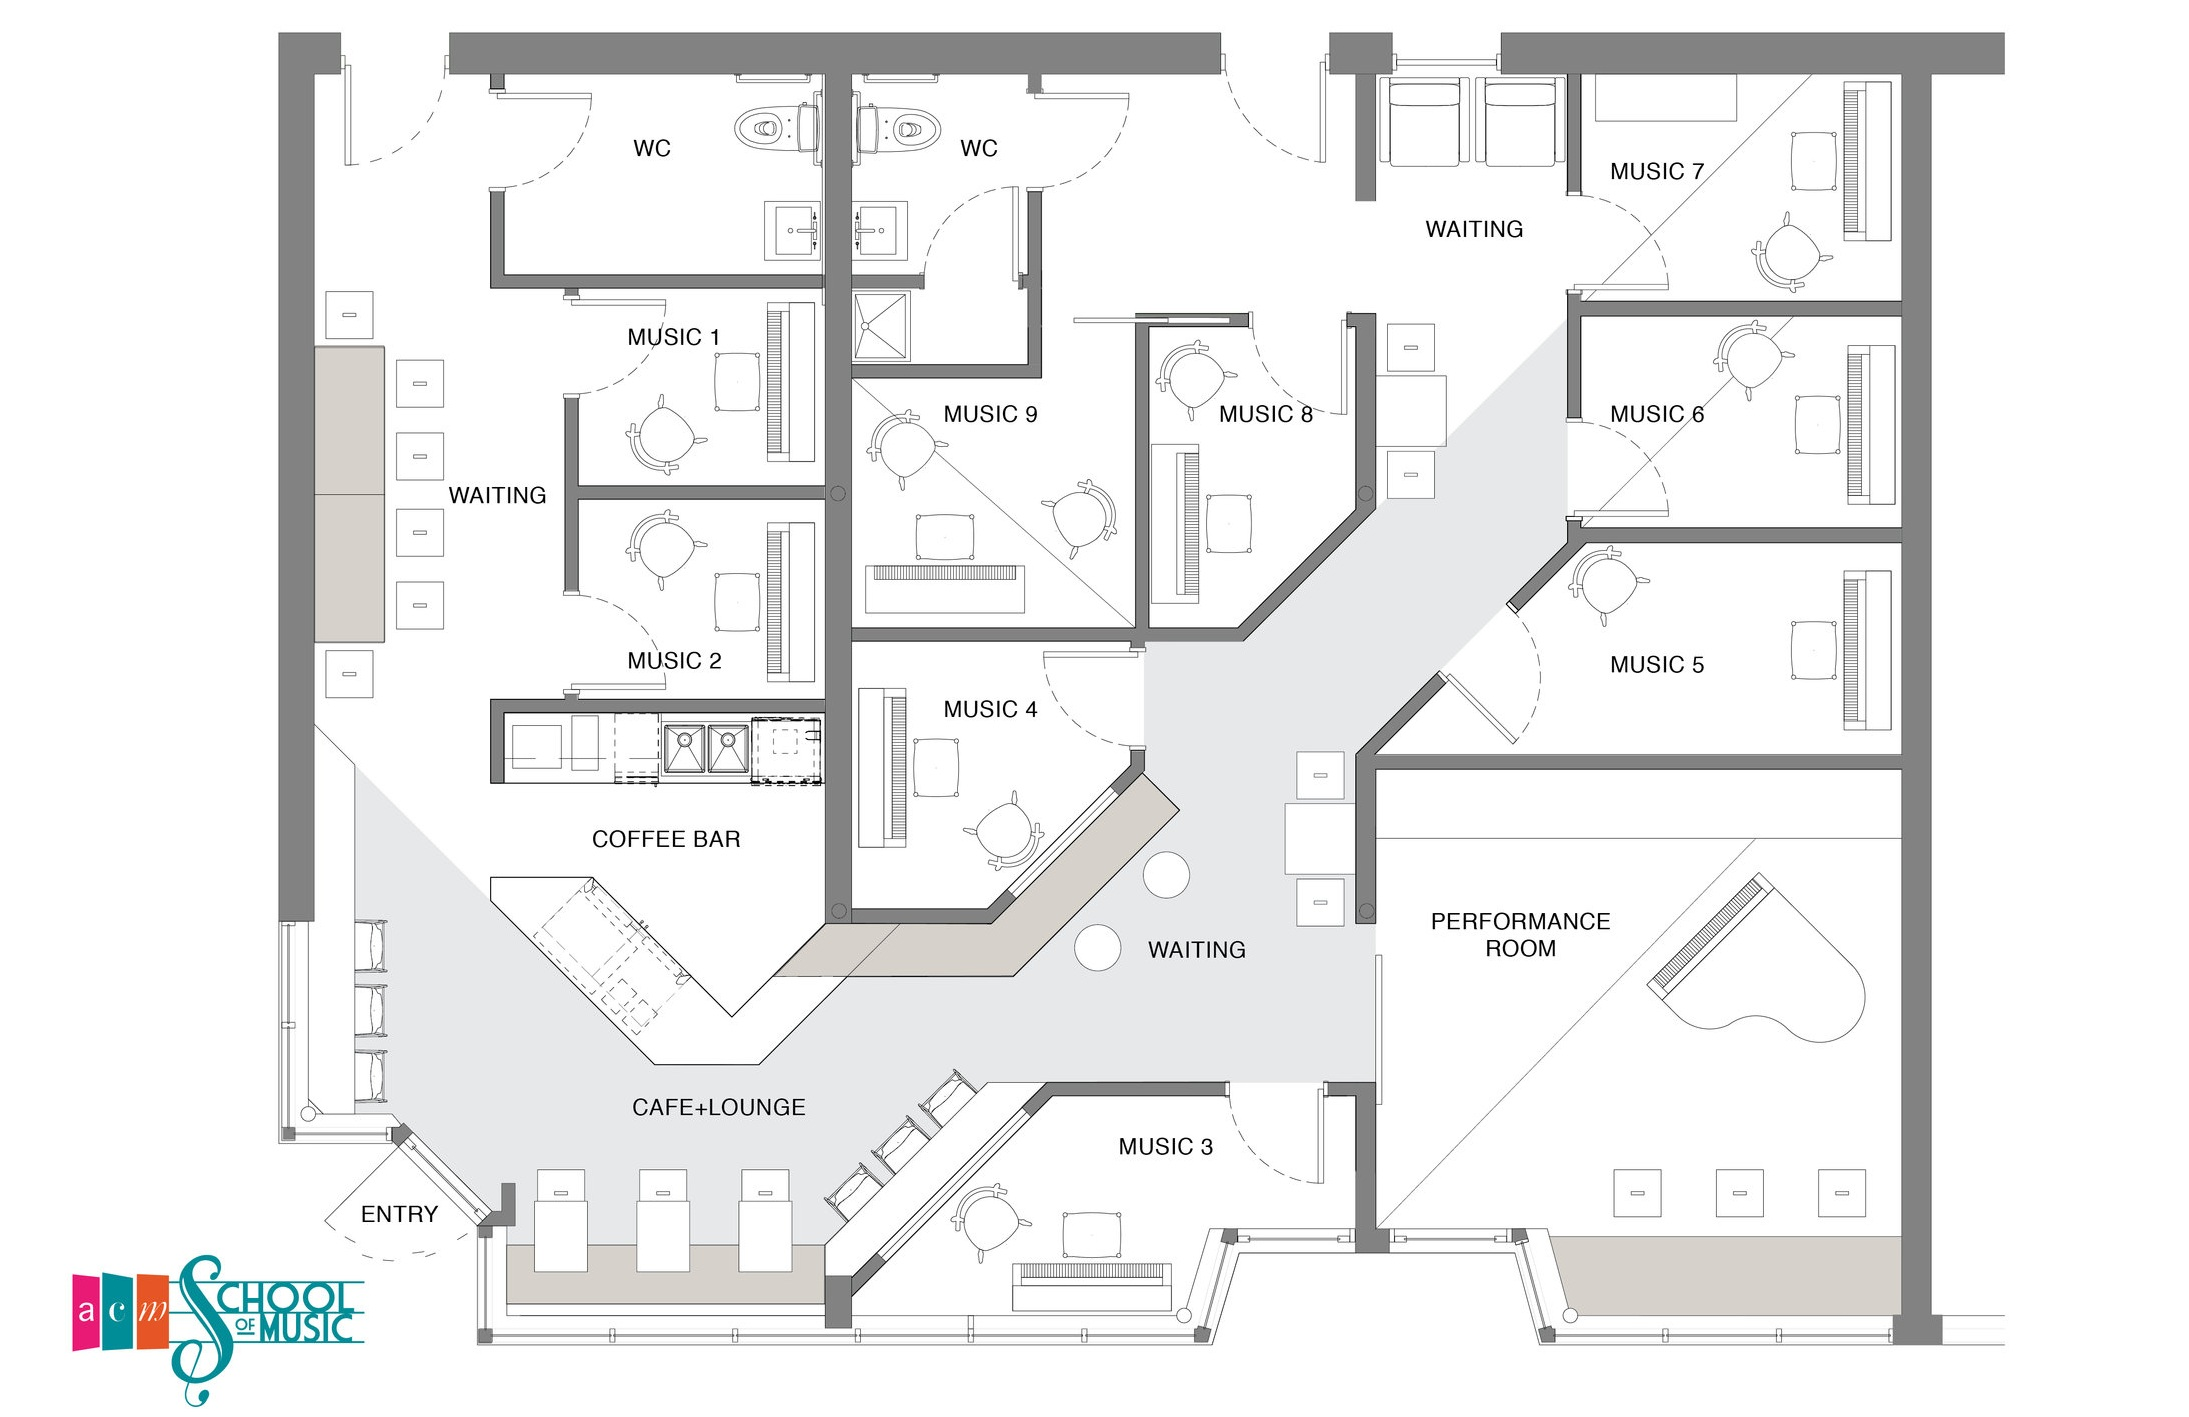 PLAN: The existing plan, which started out as three separate storefronts, lacked flow and efficiency of square footage.  weetu  was inspired by the movement of sound and created a kinetic path to unify the space, allowing for clear and direct wayfinding from public zones to the classrooms.